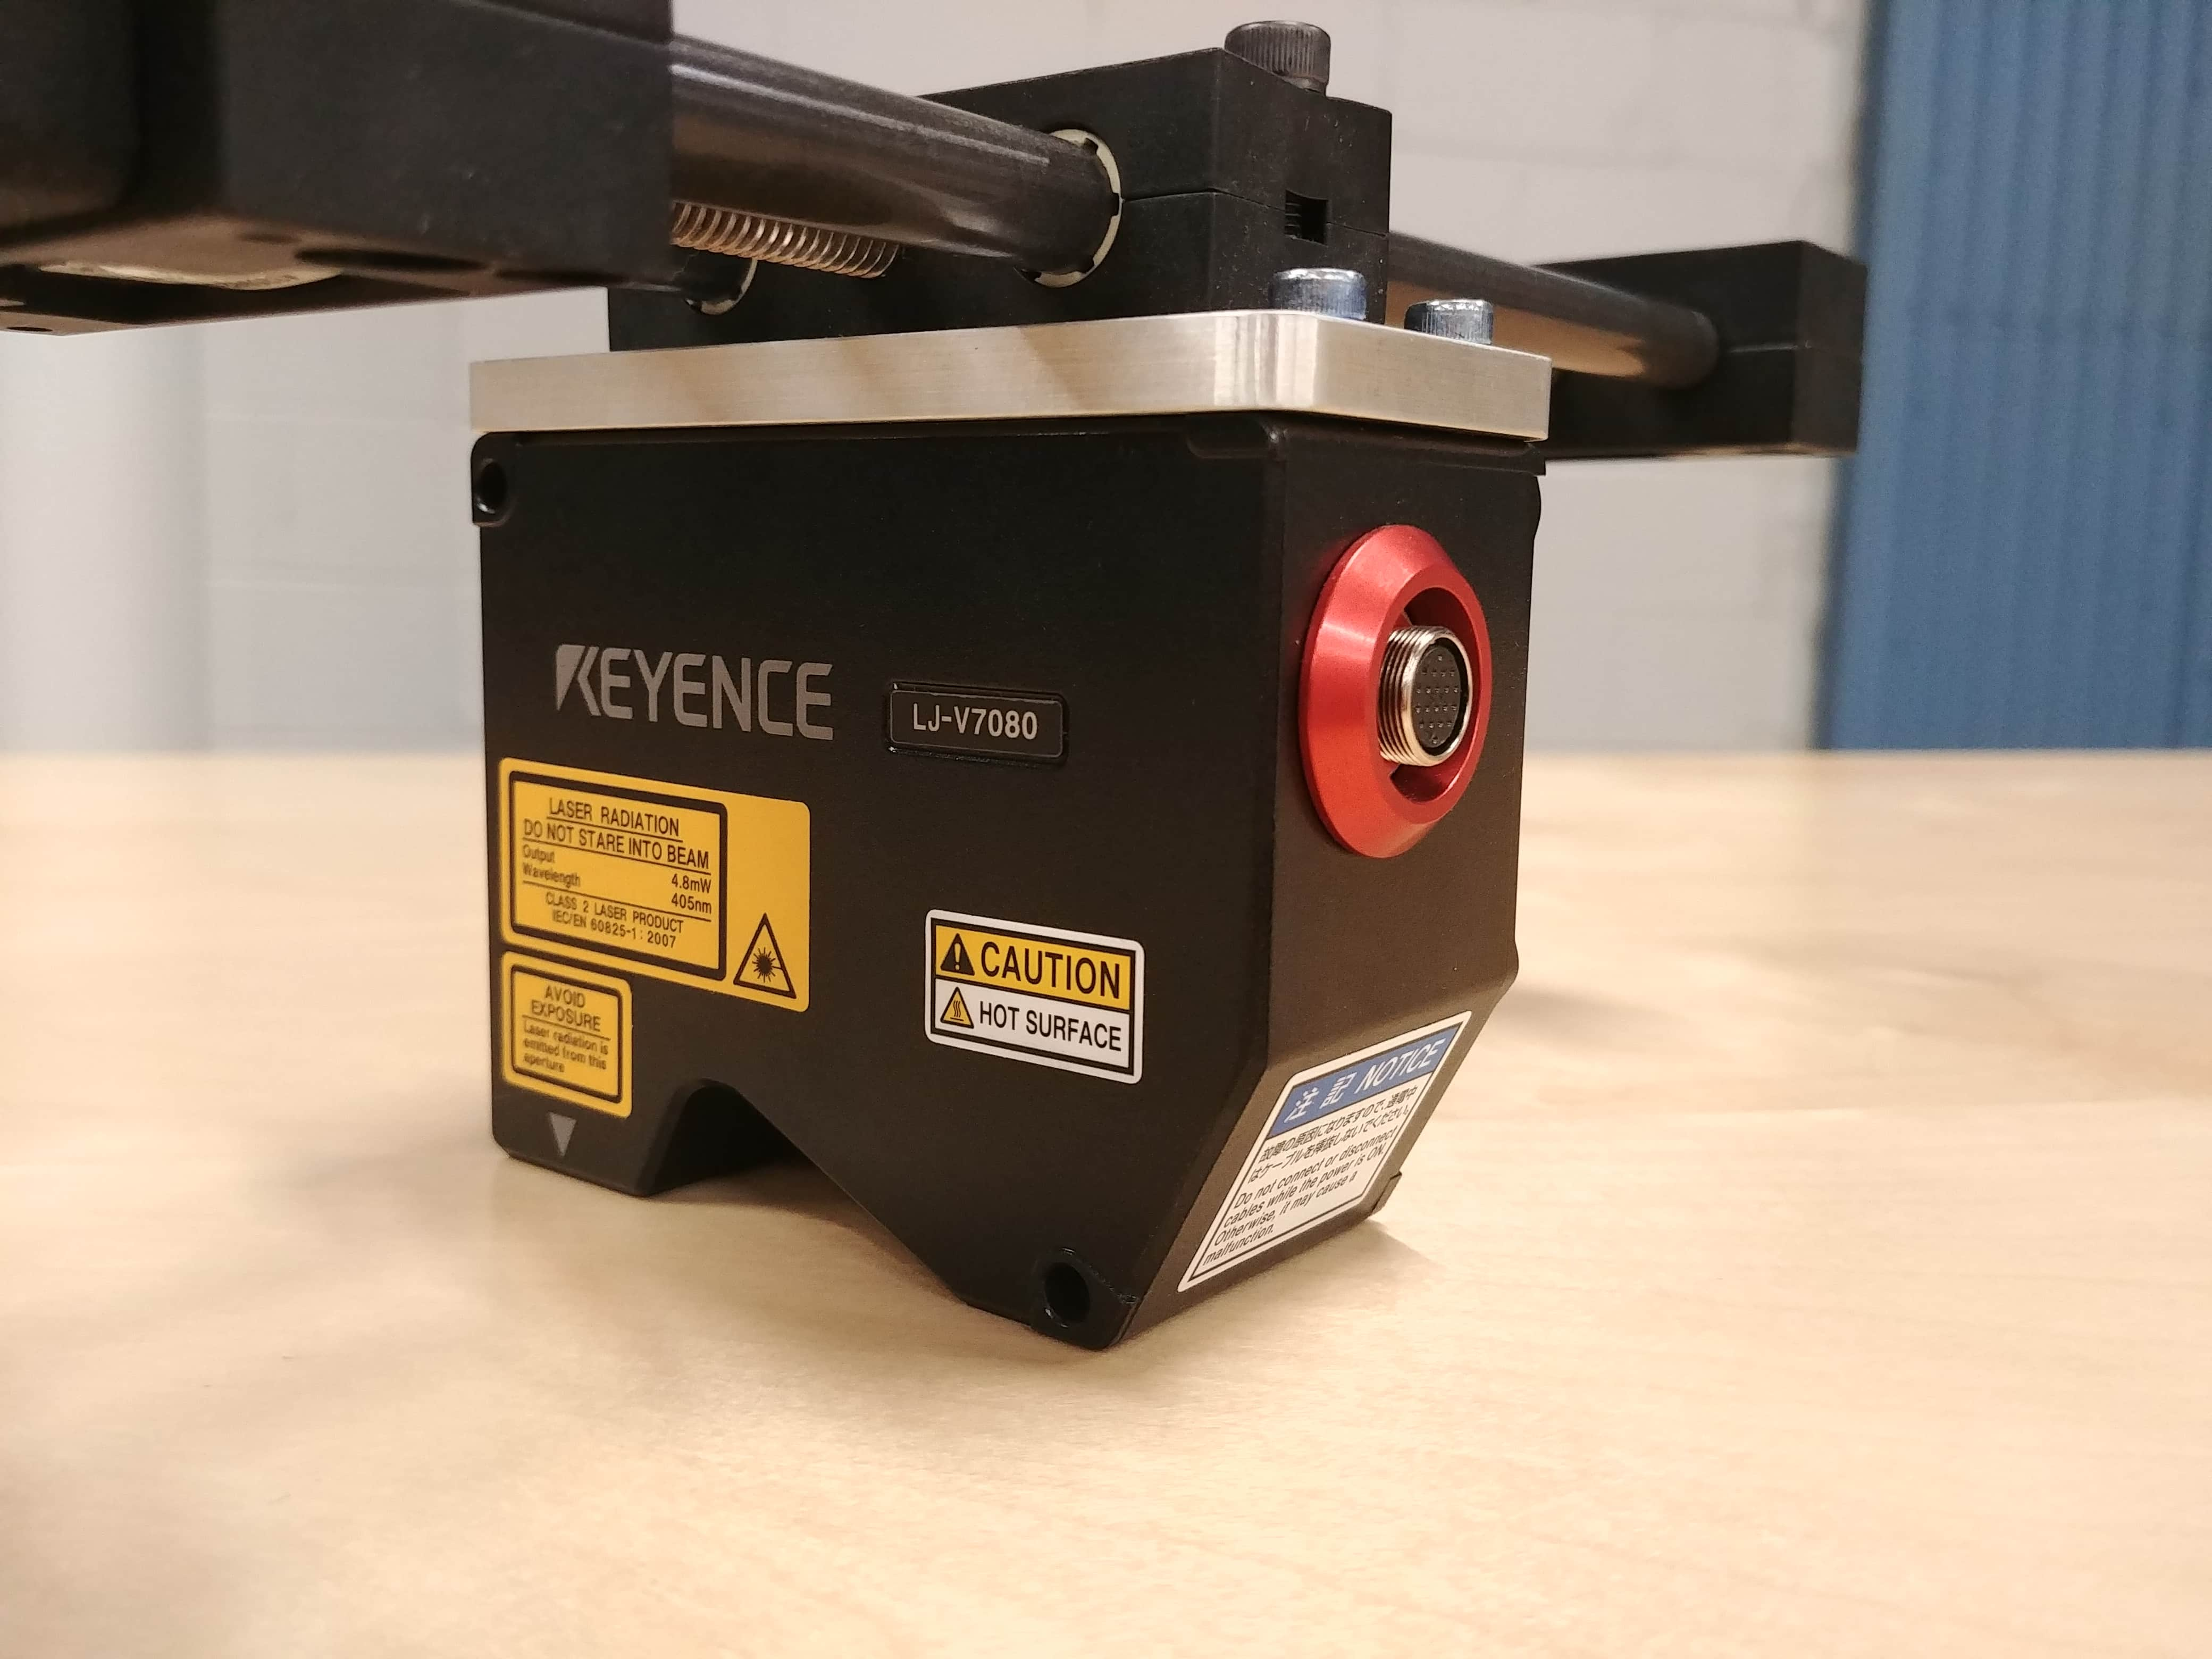 Keyence High speed laser profiler LJ-V7080